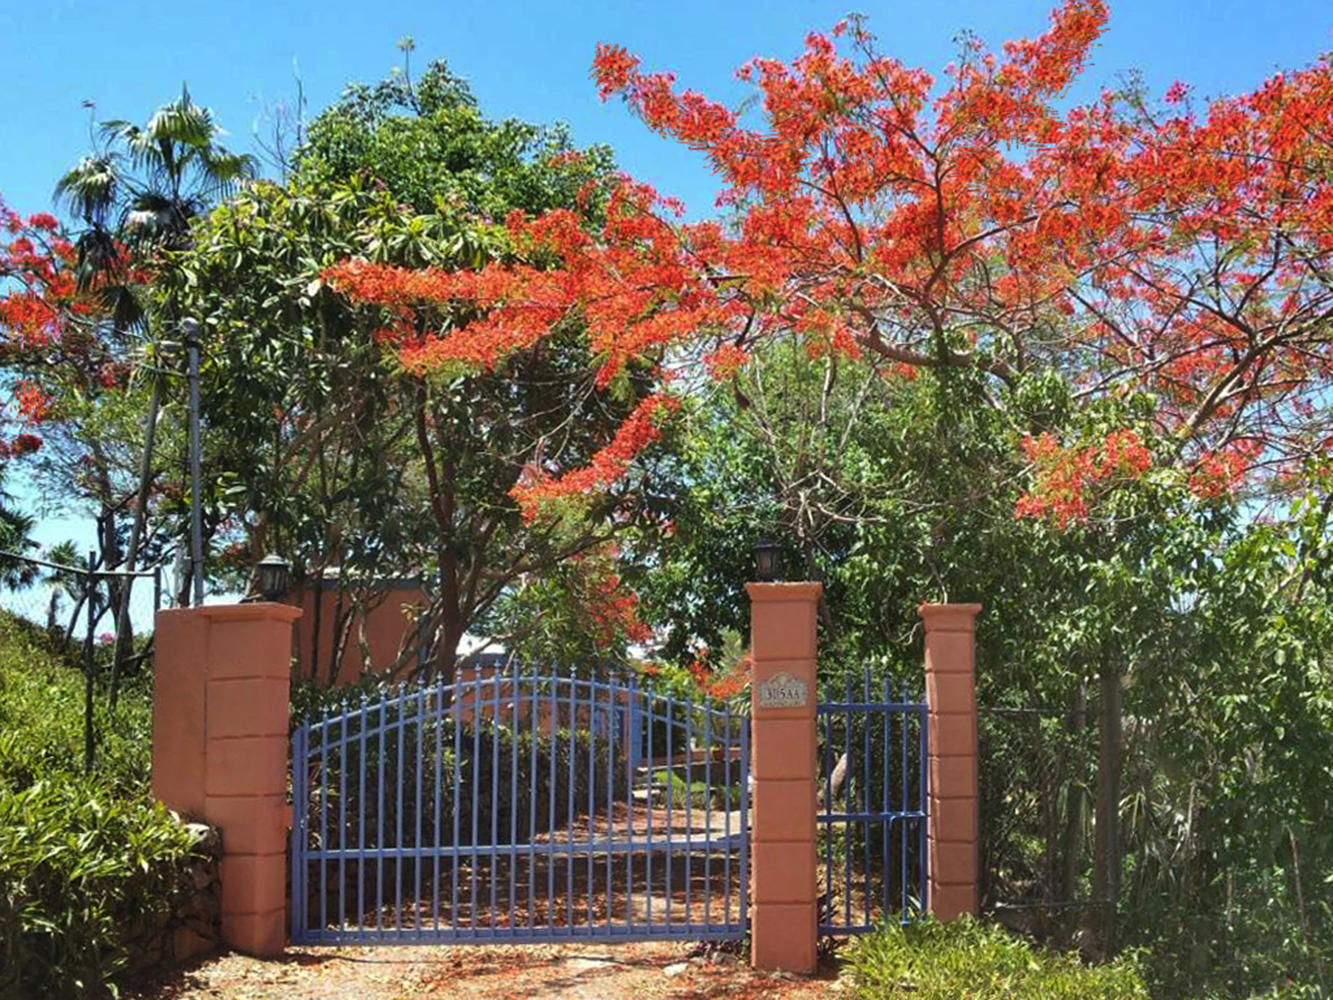 Private Road to Lush Gated Entrance